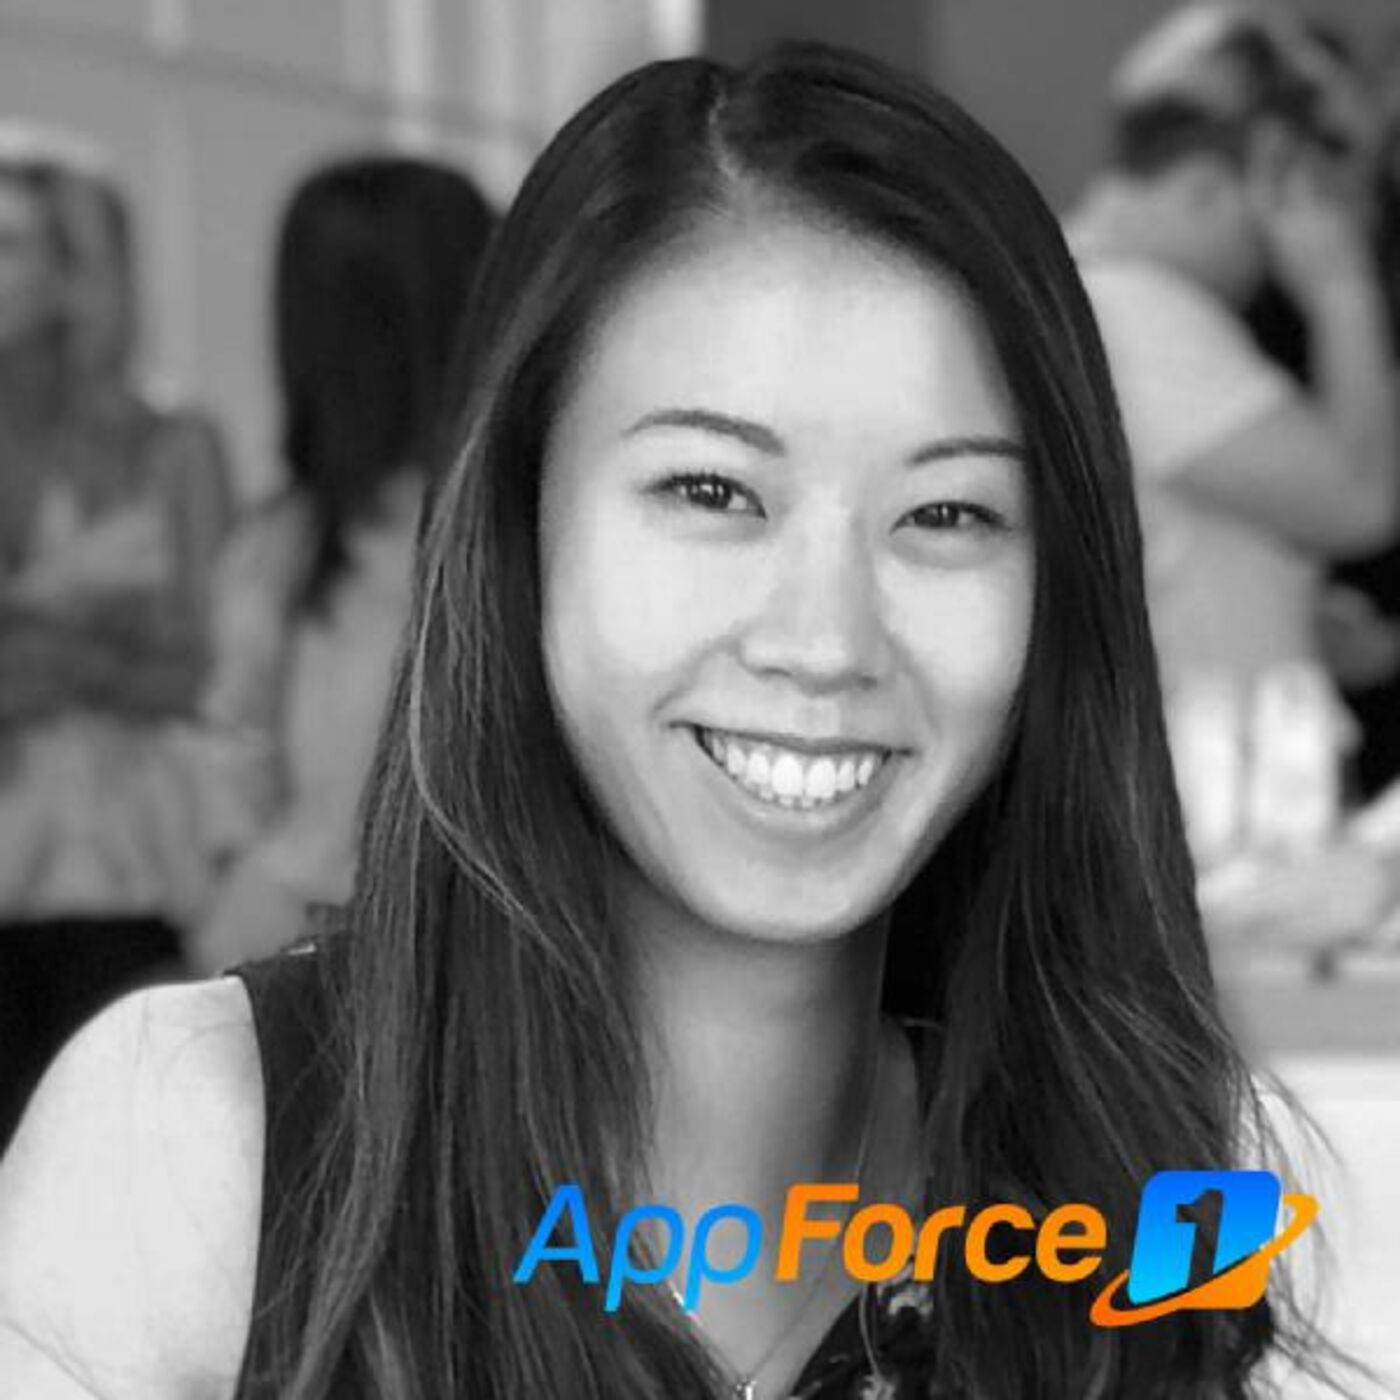 Stephanie Chiu, self-taught iOS Software Engineer with a B.S. in Chemical Engineering.